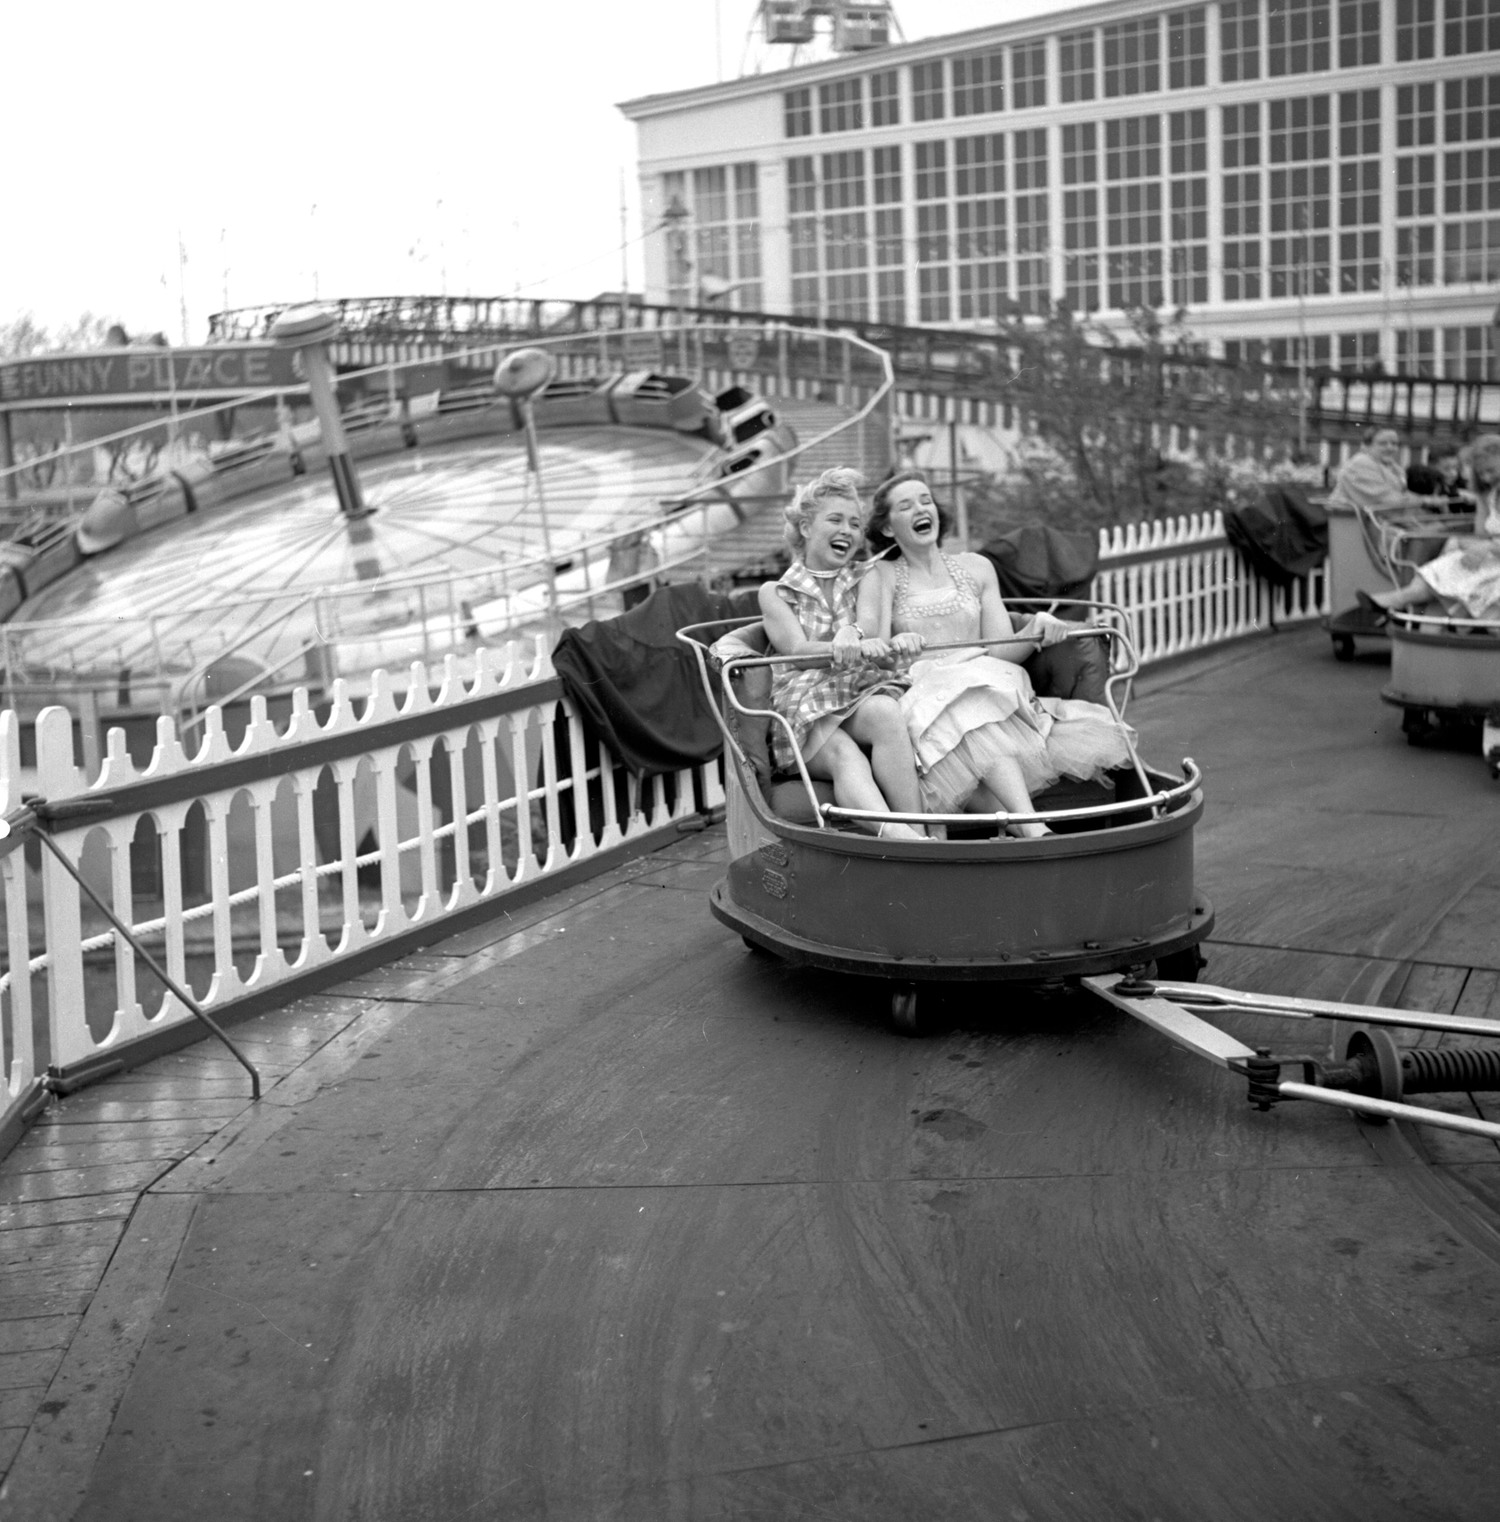 "Models from the CBS gameshow, ""The Big Payoff,"" Cindy Robbins and Pat Conway ride The Whip designed and built by W.F. Mangels Company of Coney Island, at Steeplechase Park. Coney Island, Brooklyn, NY."